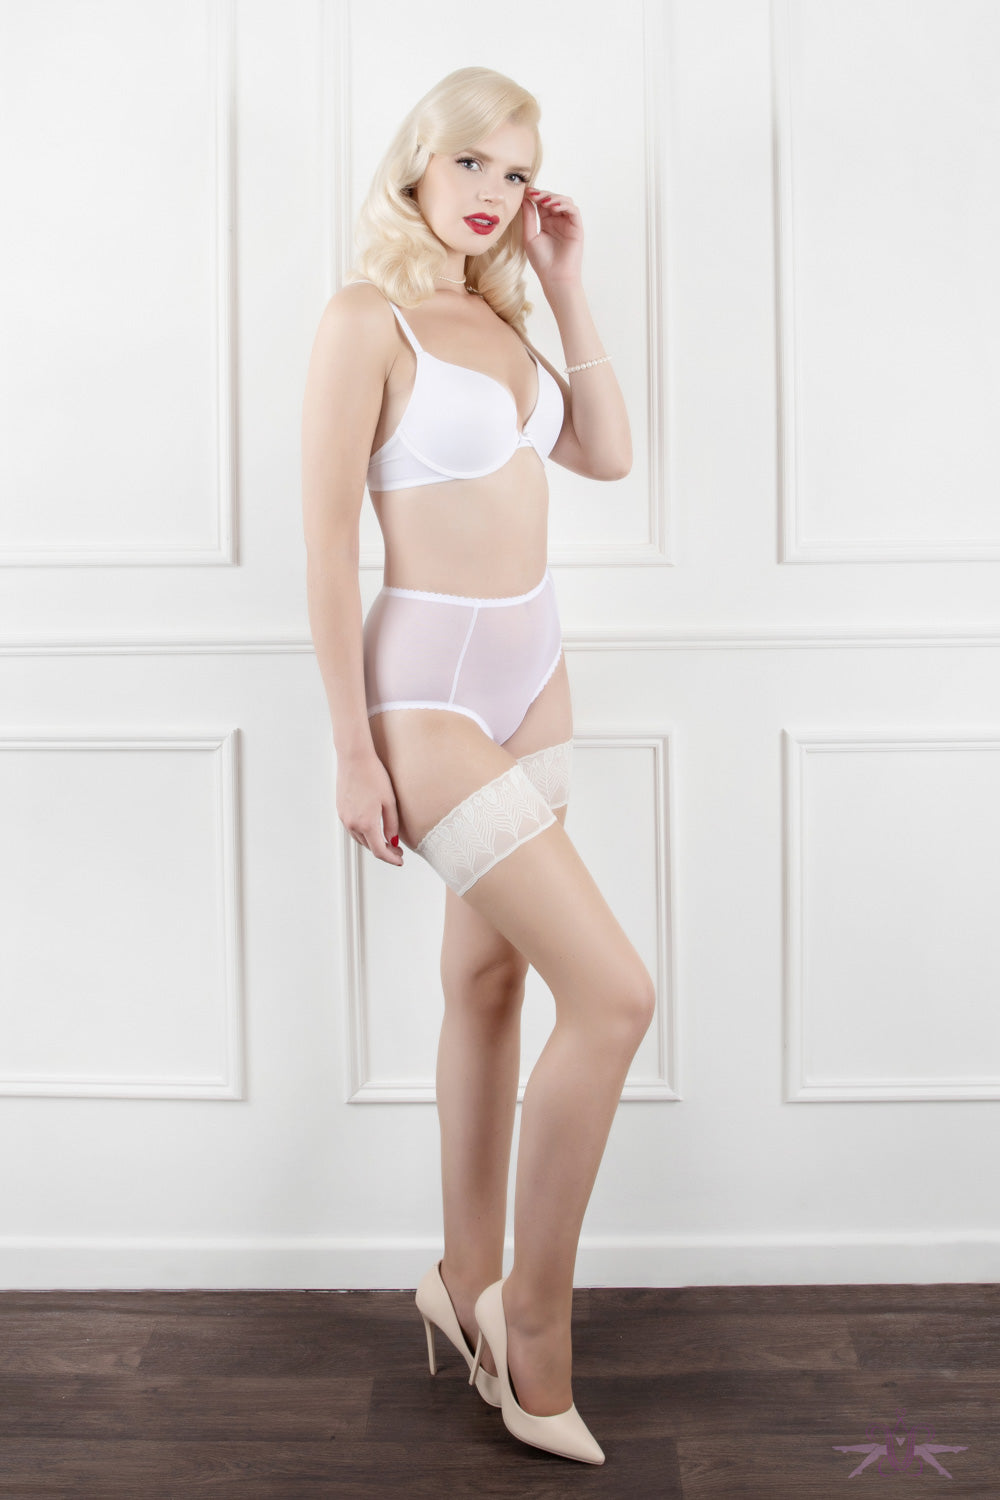 Mayfair Bianca Sheer Open Knickers